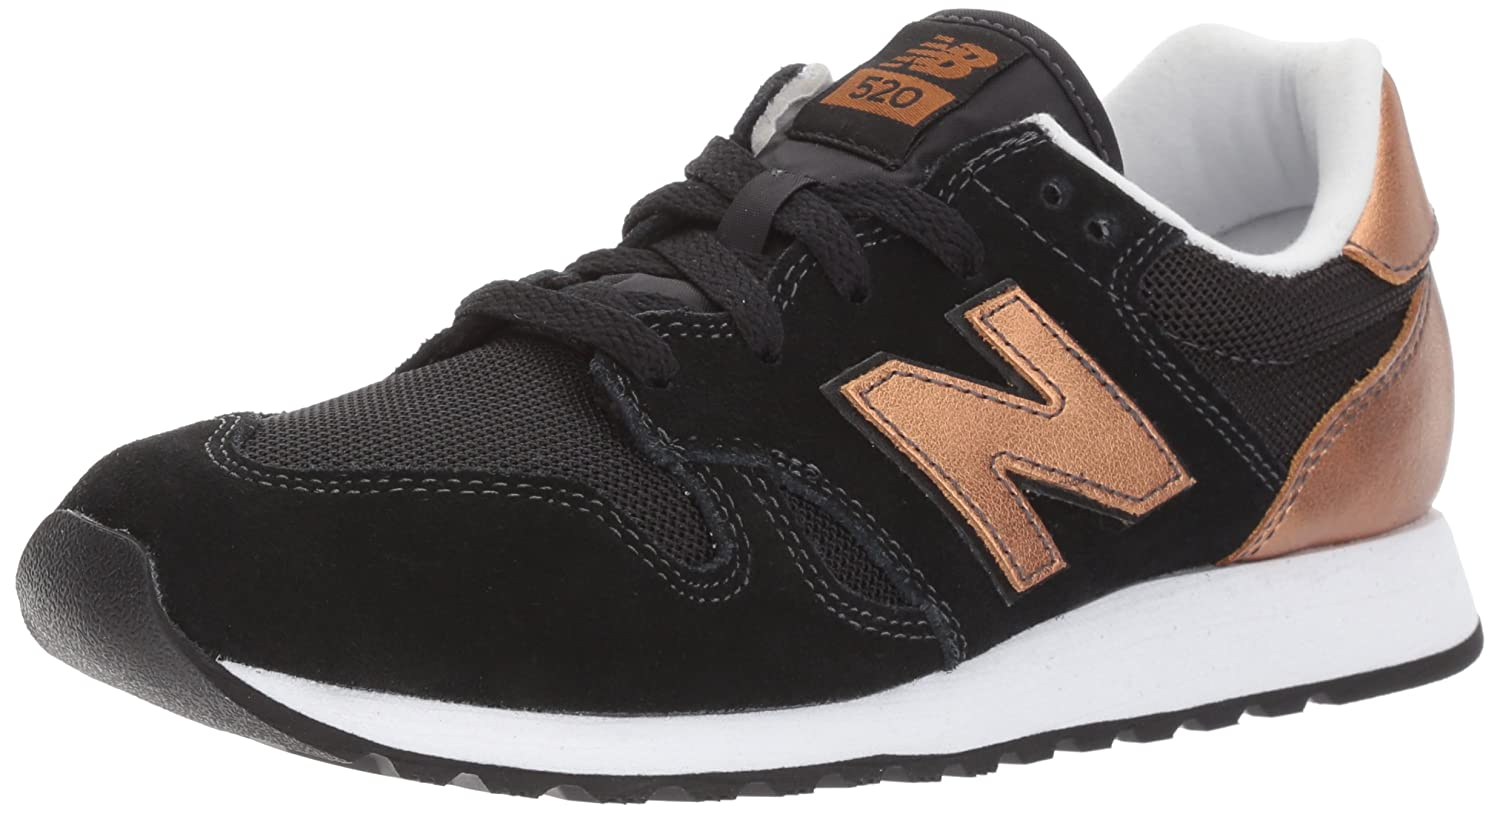 New Balance Women's 520v1 Sneaker B01N77Y6DV 9 B(M) US|Black/Copper